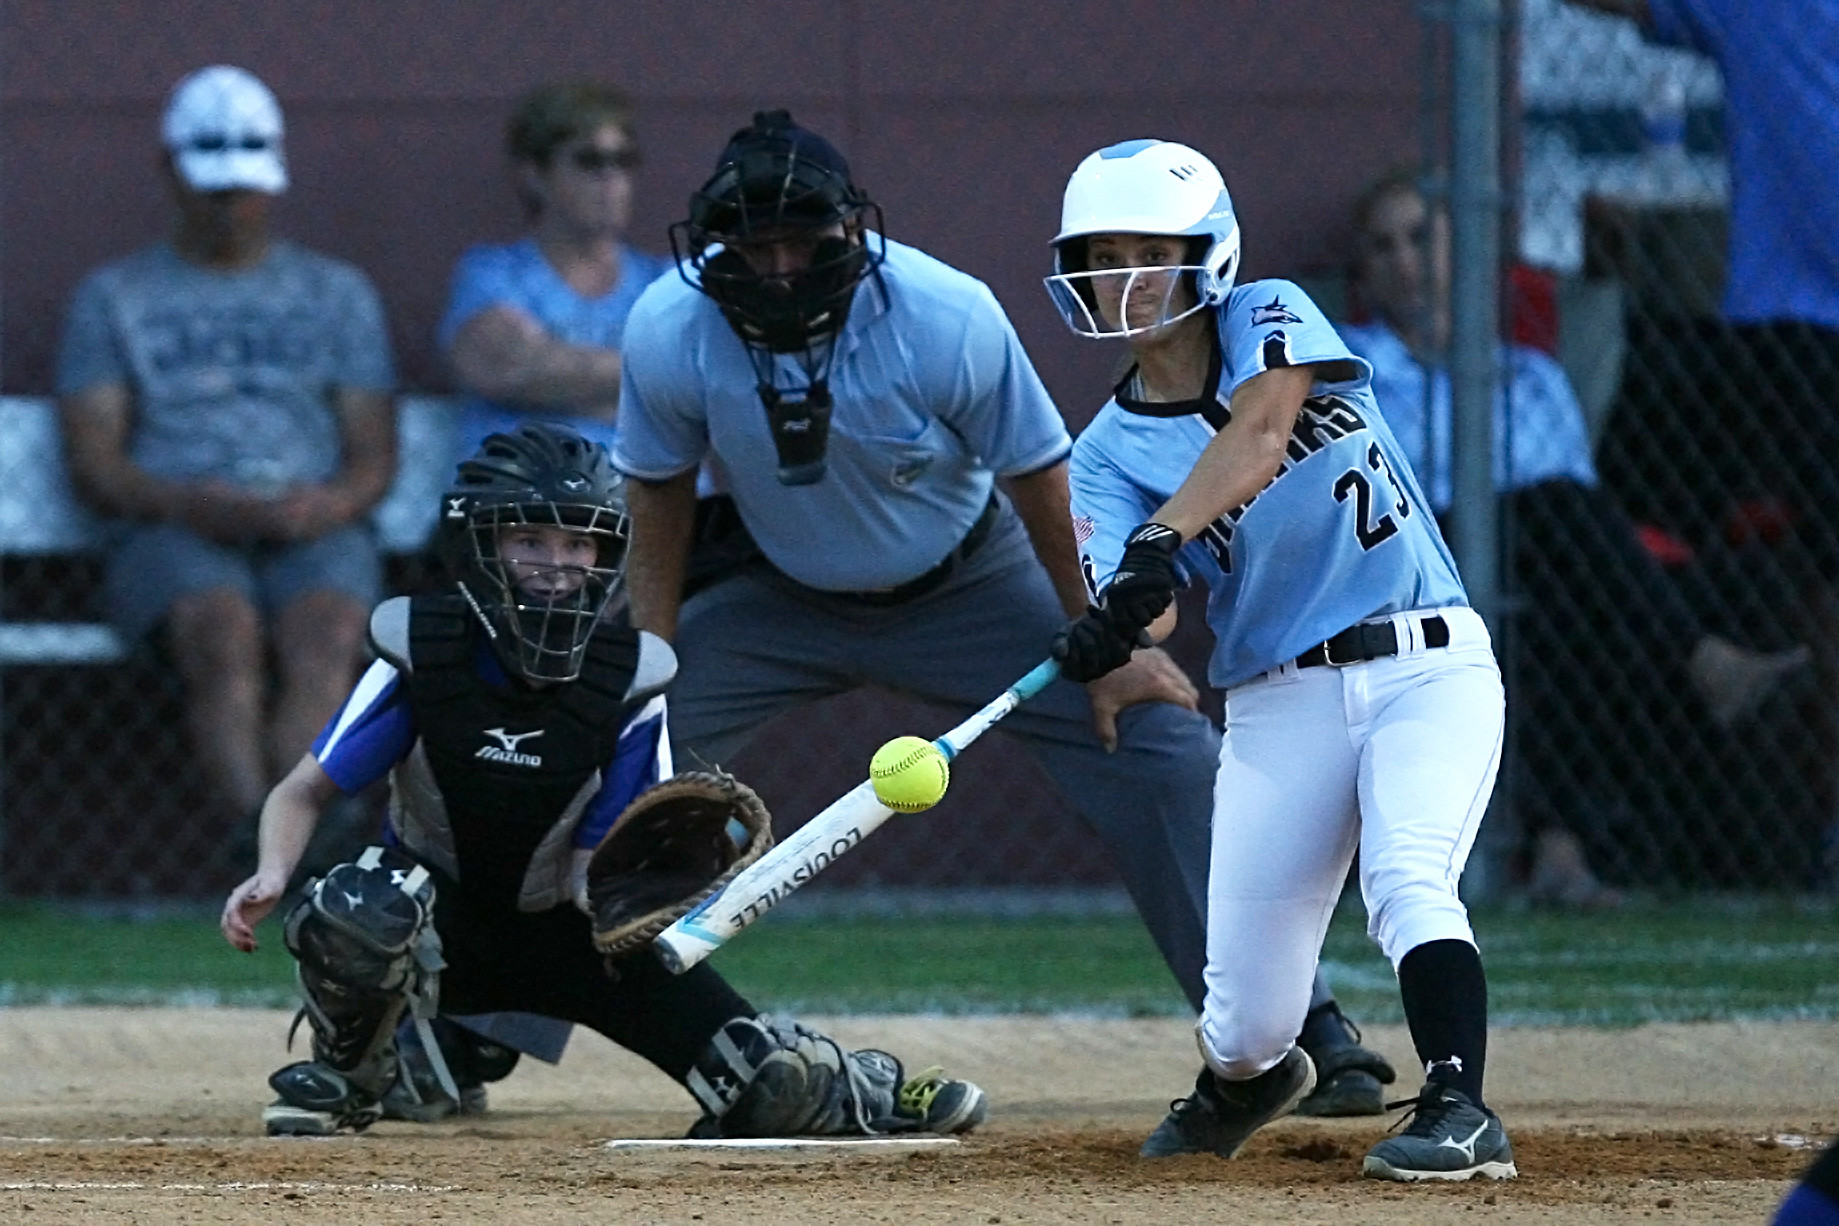 Kiley Hennessey lines a base hit for the Sharks against Ridgeview.